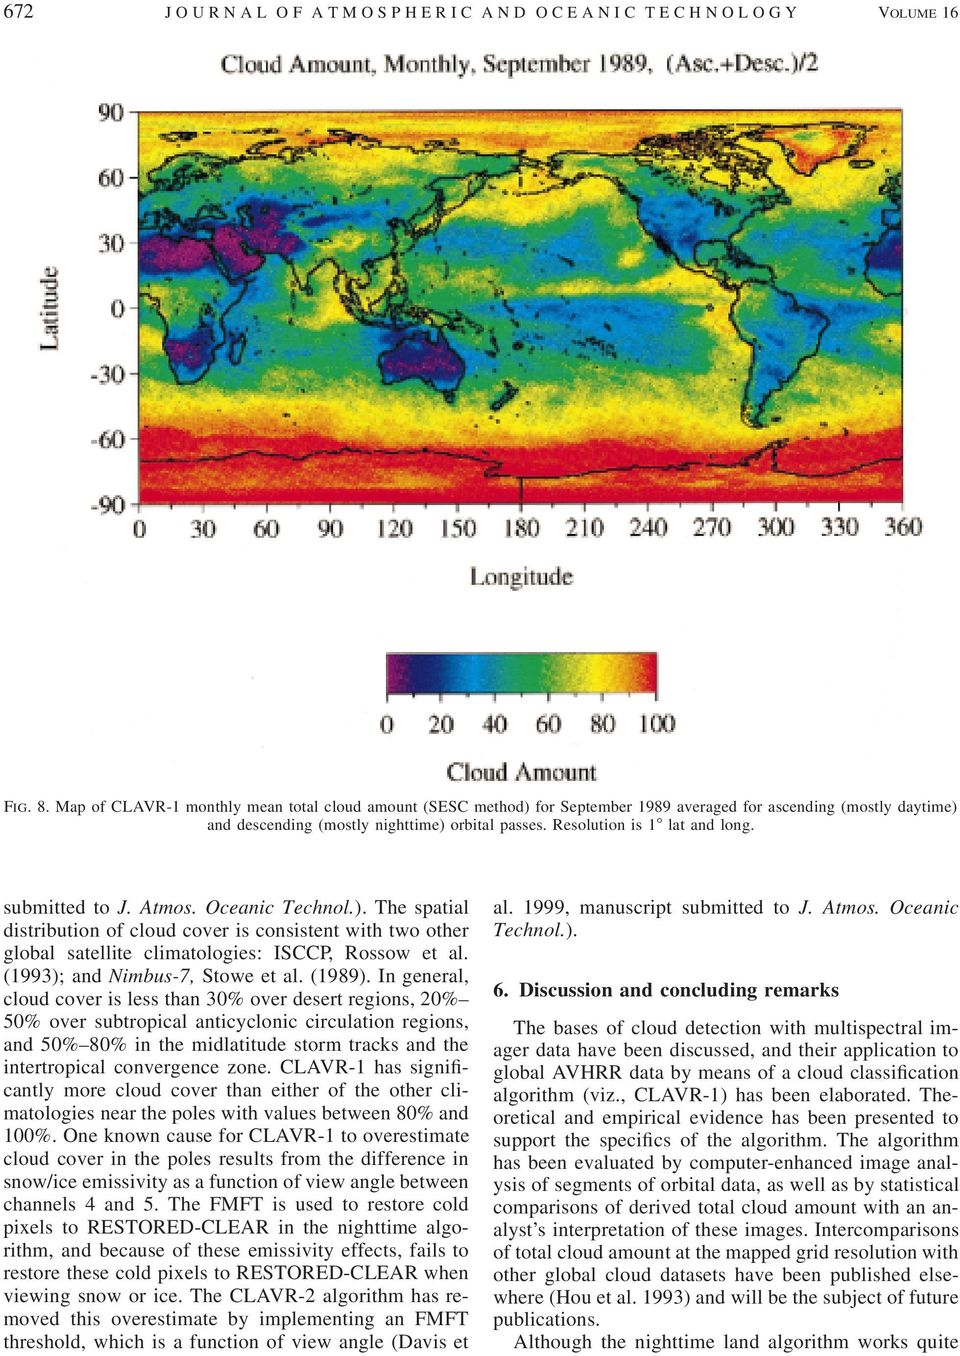 submitted to J. Atmos. Oceanic Technol.). The spatial distribution of cloud cover is consistent with two other global satellite climatologies: ISCCP, Rossow et al. (1993); and Nimbus-7, Stowe et al.